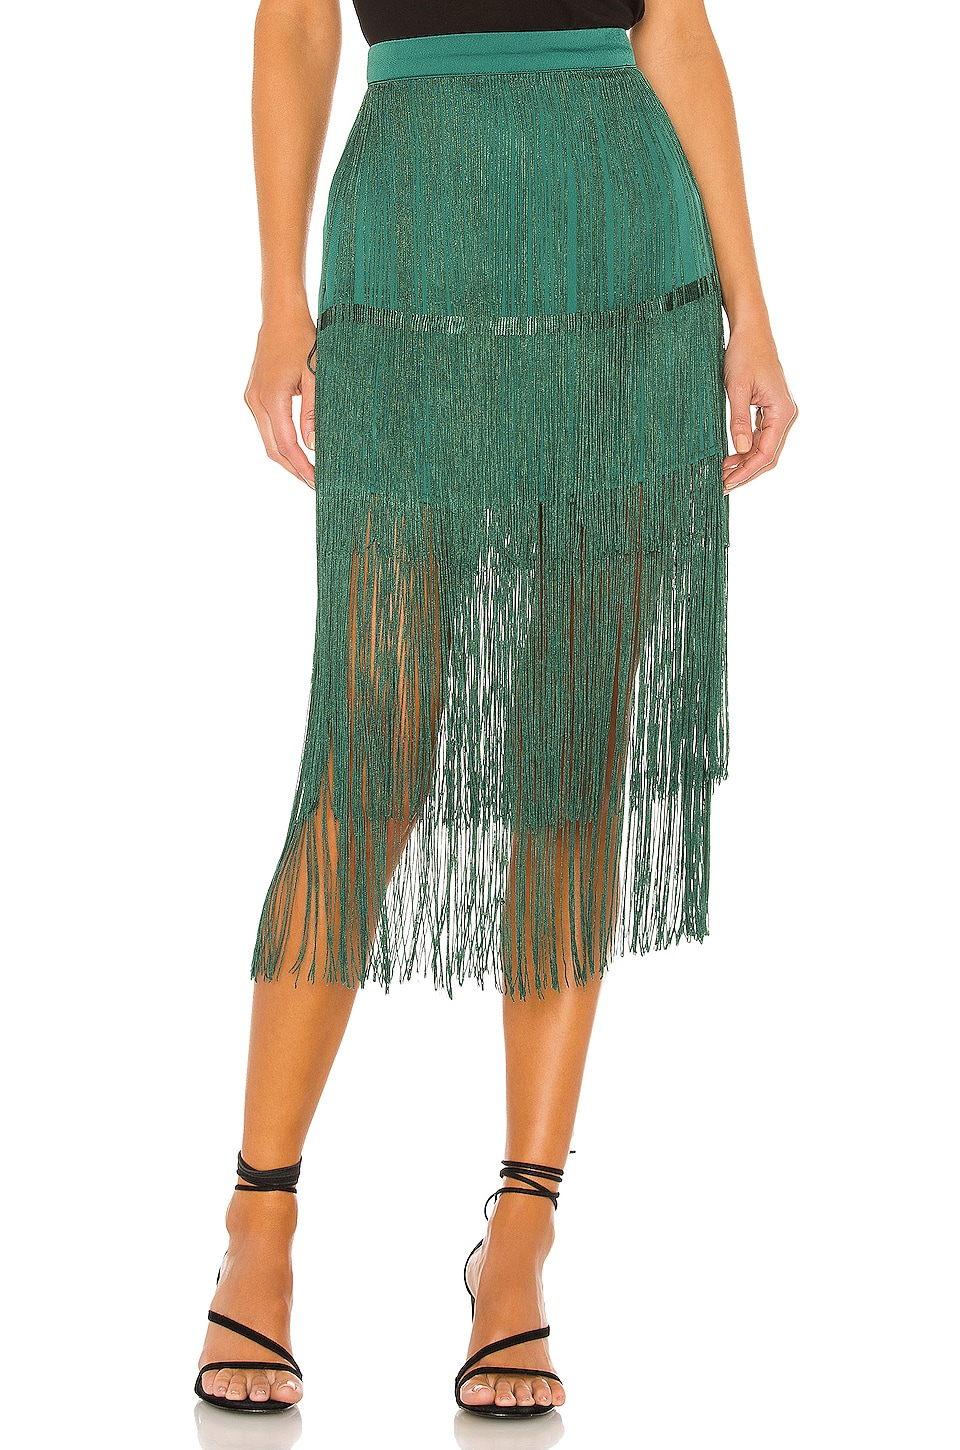 House of Harlow 1960 x REVOLVE Andres Fringe Skirt in Emerald